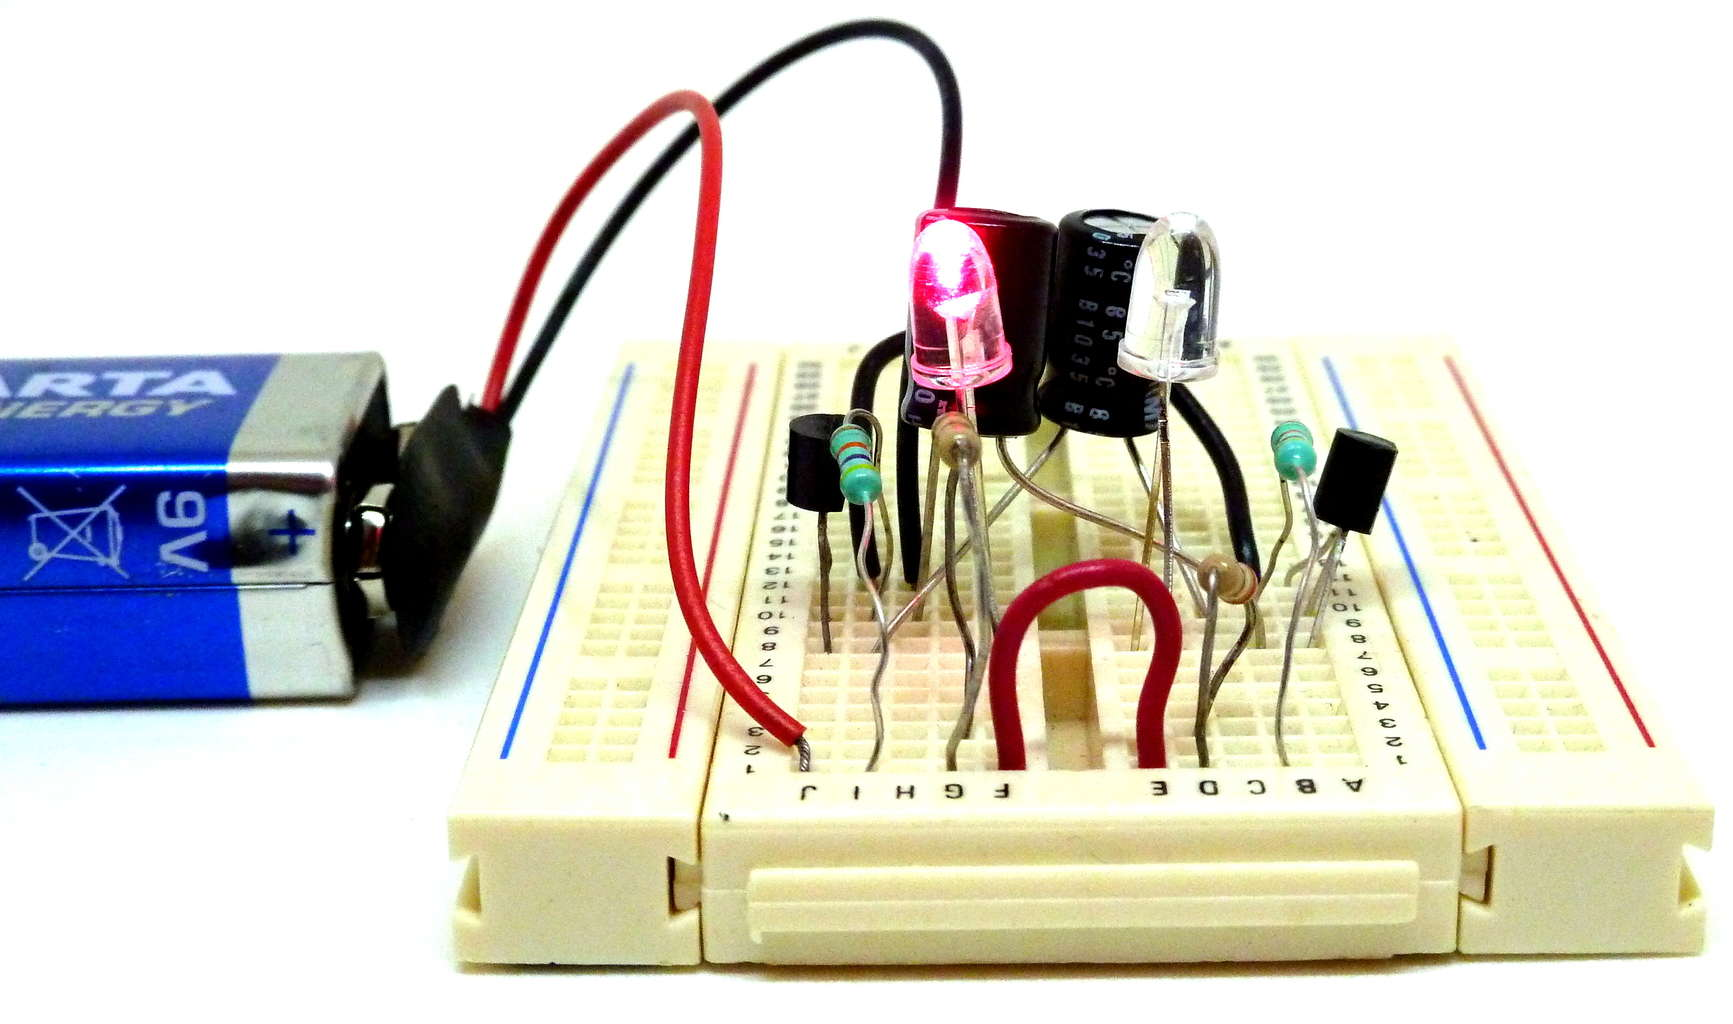 Led Circuit On Breadboard Is Blink 2 Build Electronic Circuits Astable Multivibrator A